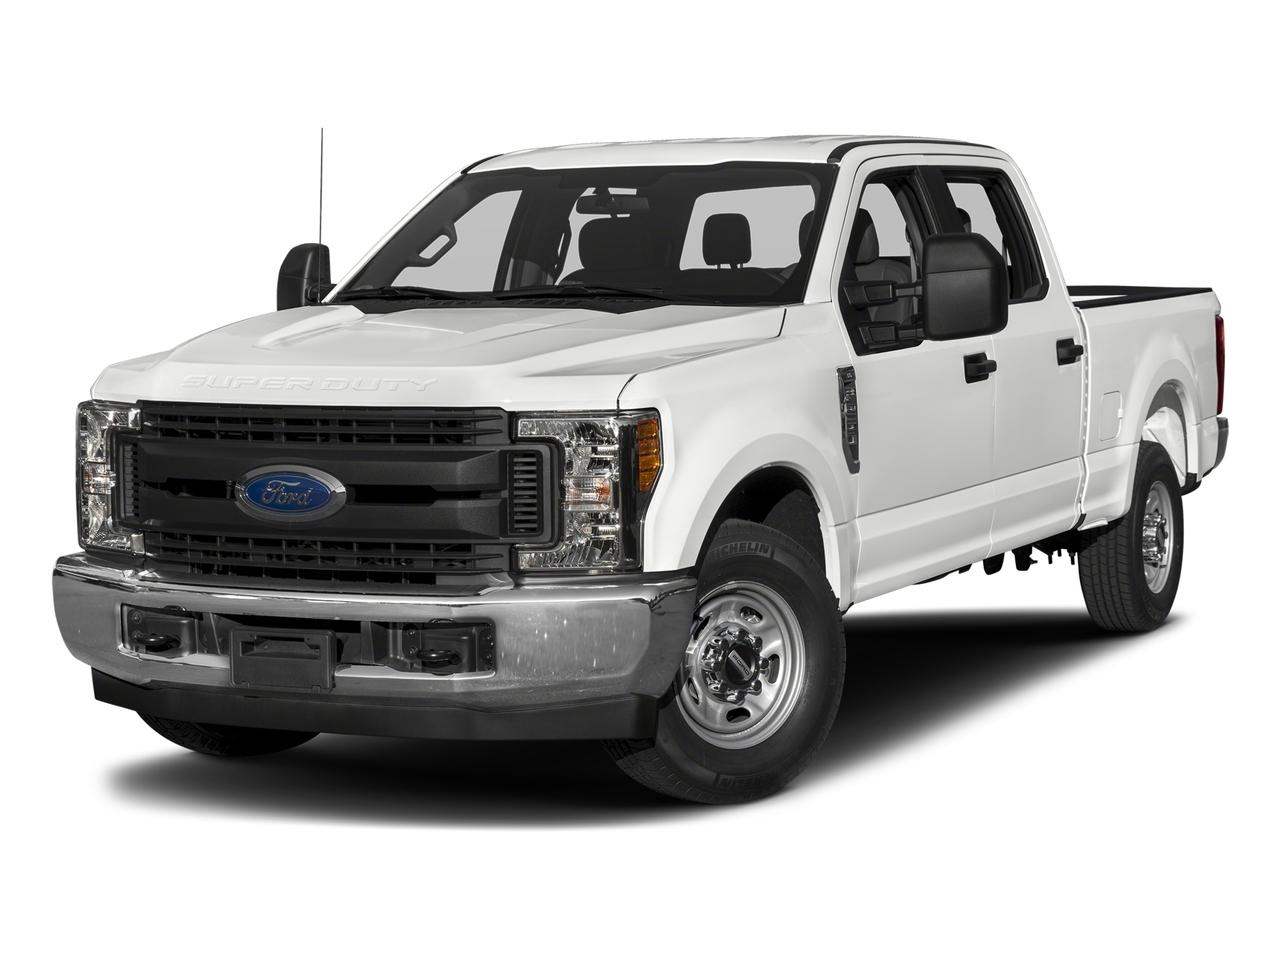 2017 Ford Super Duty F-250 SRW Vehicle Photo in Prescott, AZ 86305